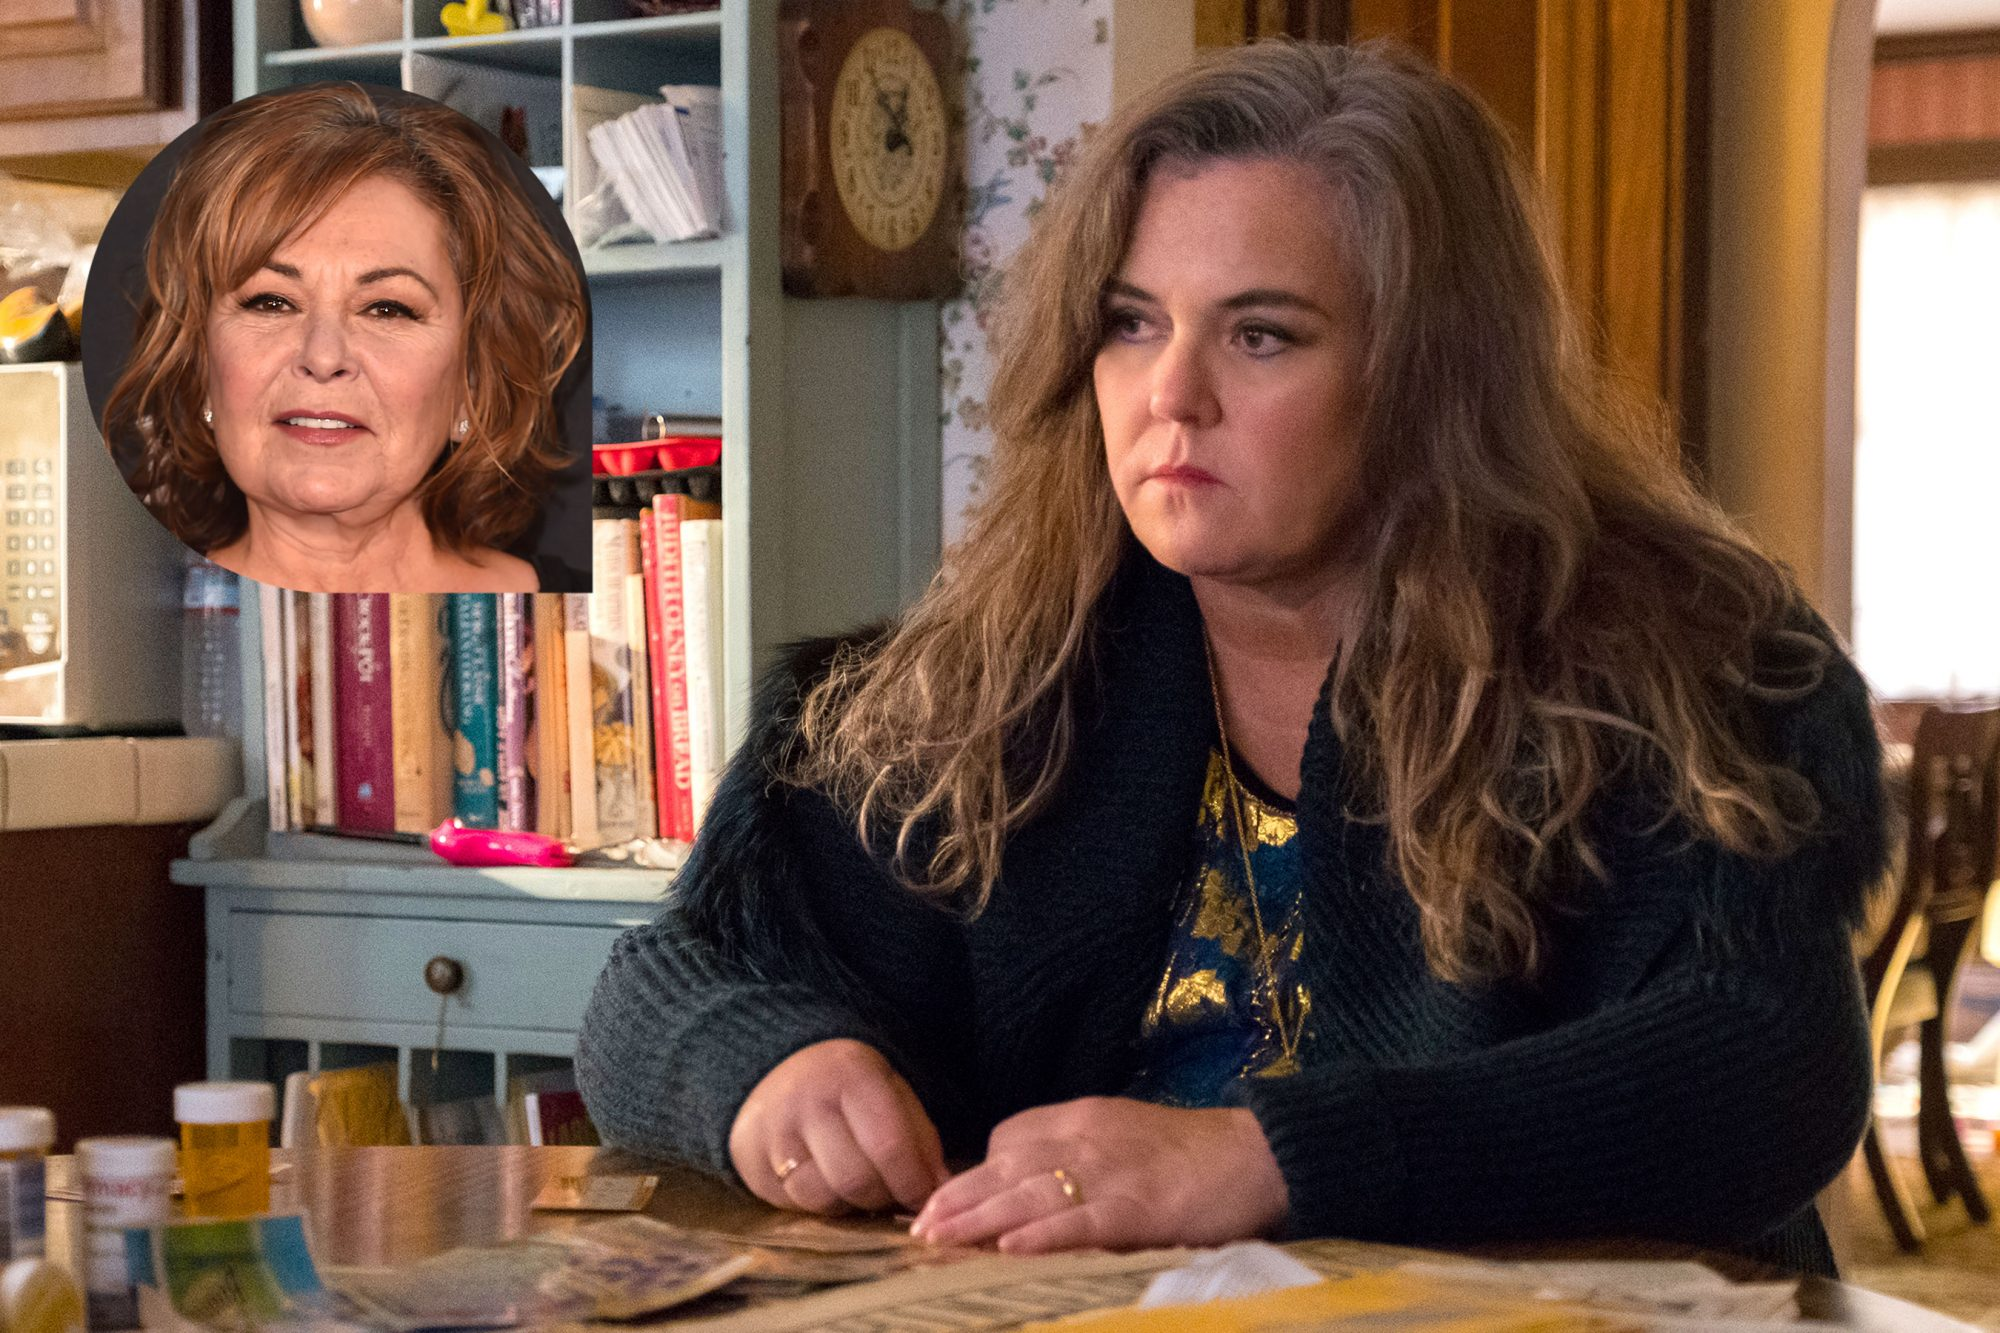 Rosie O'Donnell as TuTu in Showtime's SMILF